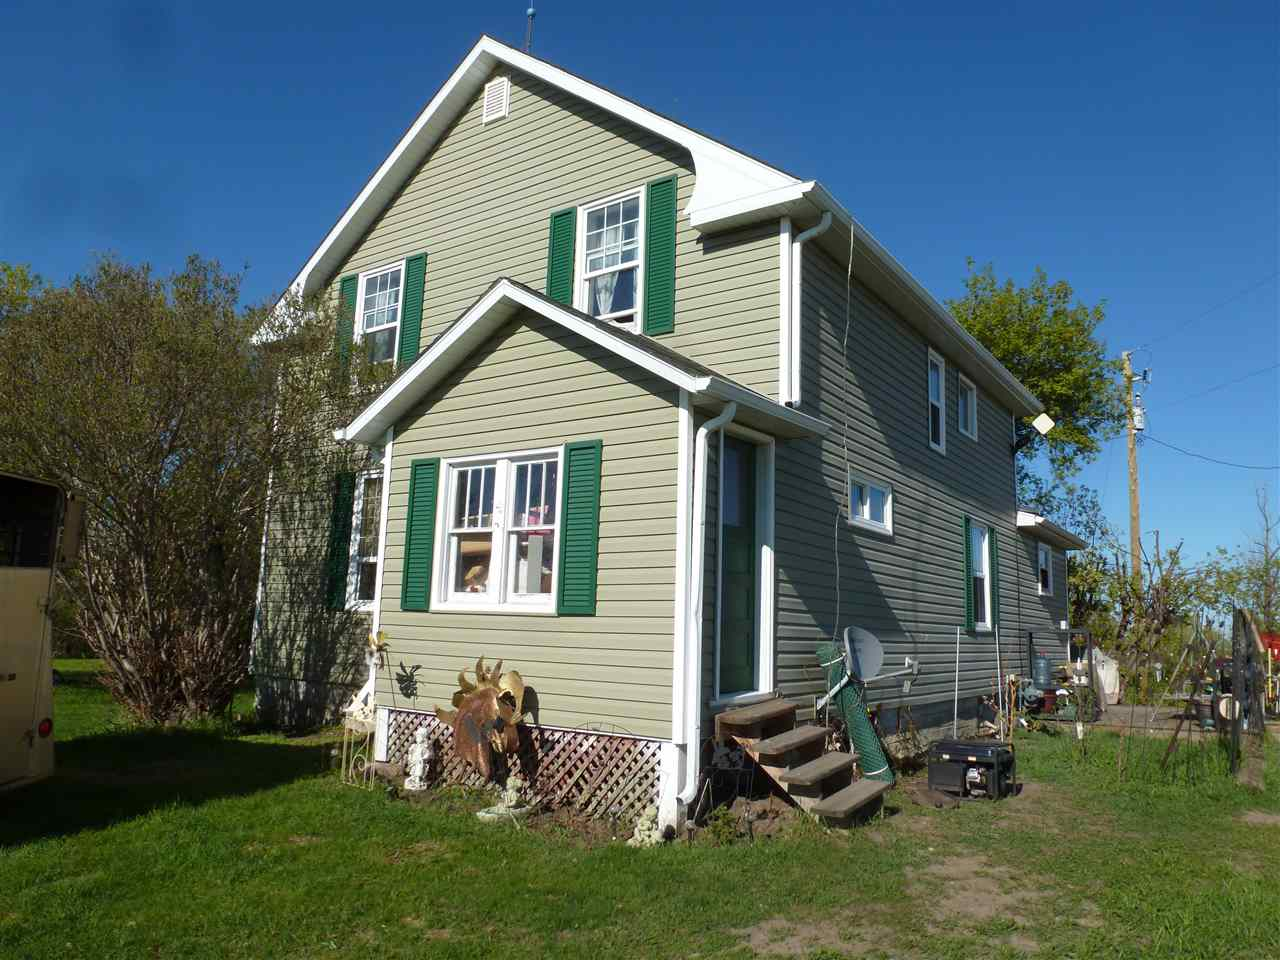 **REDUCED & READY** New Price - *$262,999!* 16.53 Acres with older house and barn - formerly a homestead. This Semi-Bungalow or One and a Half Storey style house is estimated to be of 1936 vintage, although Beaver County puts the effective age at 1950. Some improvements have already been done and more are in progress. The exterior of the house, i.e. siding, roof and windows have been upgraded, while much of the interior is original. The main floors features a small country kitchen, the Dining Room and Living Room with newer laminate flooring, a 4-piece bathroom and a Bedroom. The upper floor houses 3 Bedrooms along with a walk-in closet. The Basement has never been finished, and is used for utilities and storage. The Big Red Barn could use some TLC, but is functional with assorted stalls and pens. There is a dug-out on the SouthWest corner of the property. This property with its character house  has tremendous potential and sits in a great location, a mere 4 paved minutes North of the Town of Tofield.